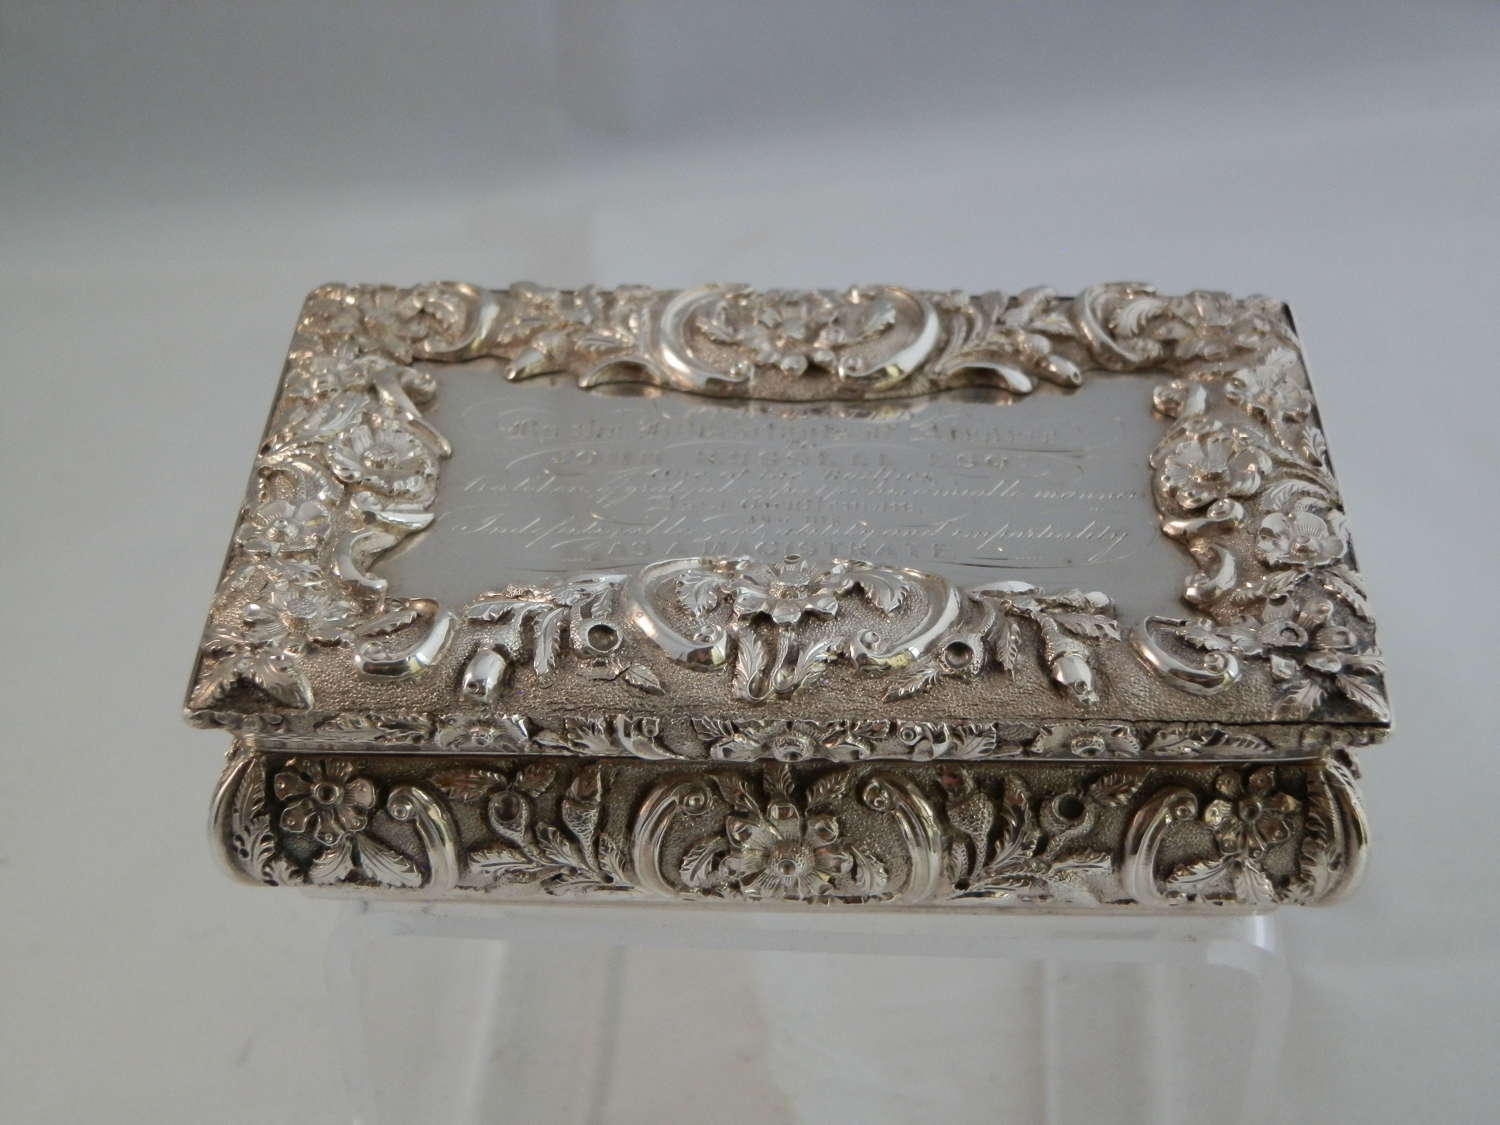 William IV silver snuff box by Nathaniel Mills